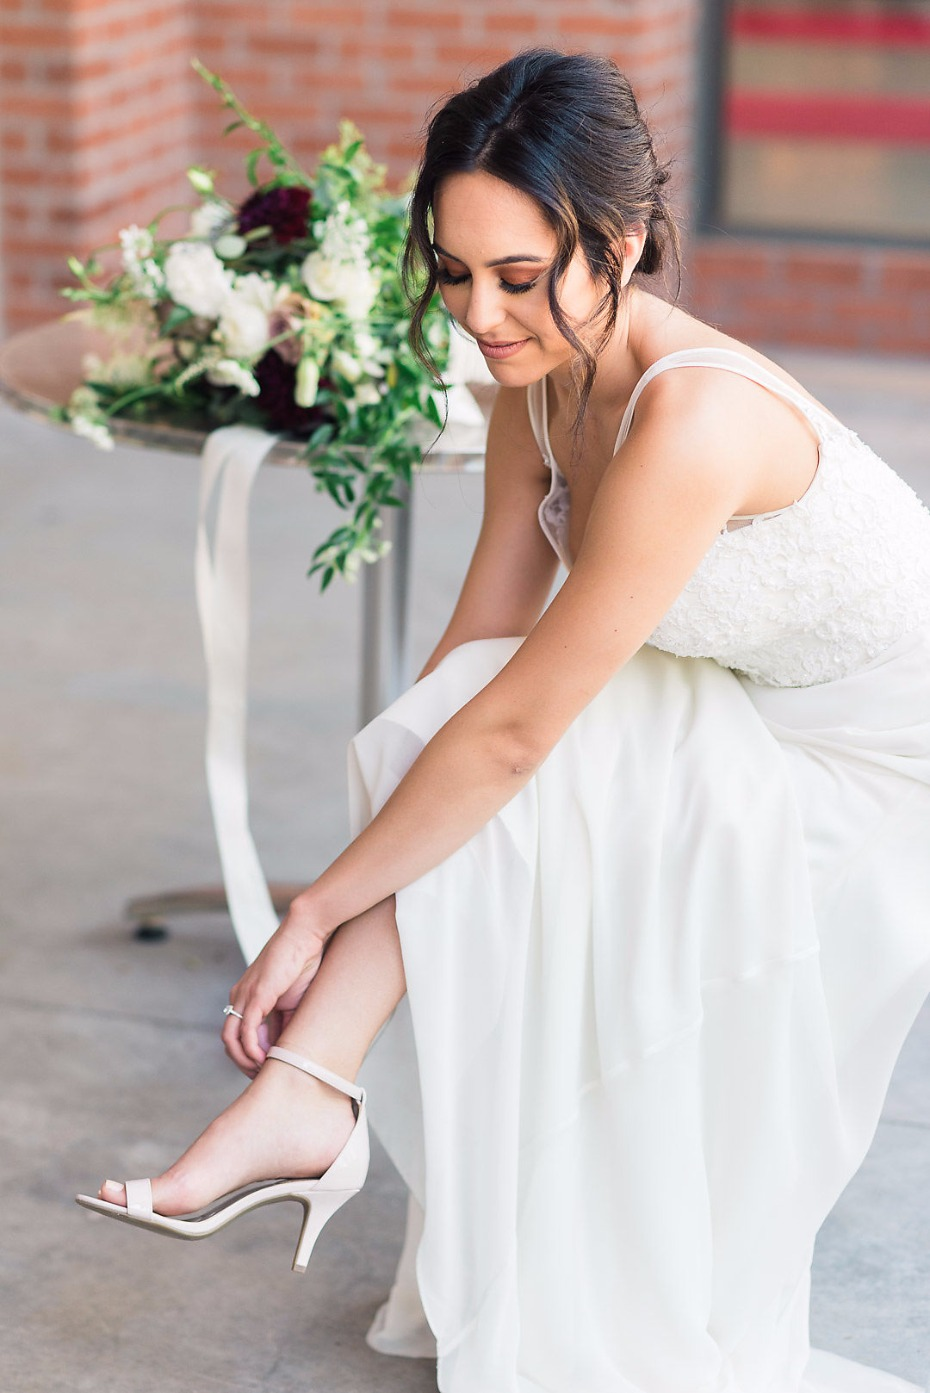 Cute shoes for the bride